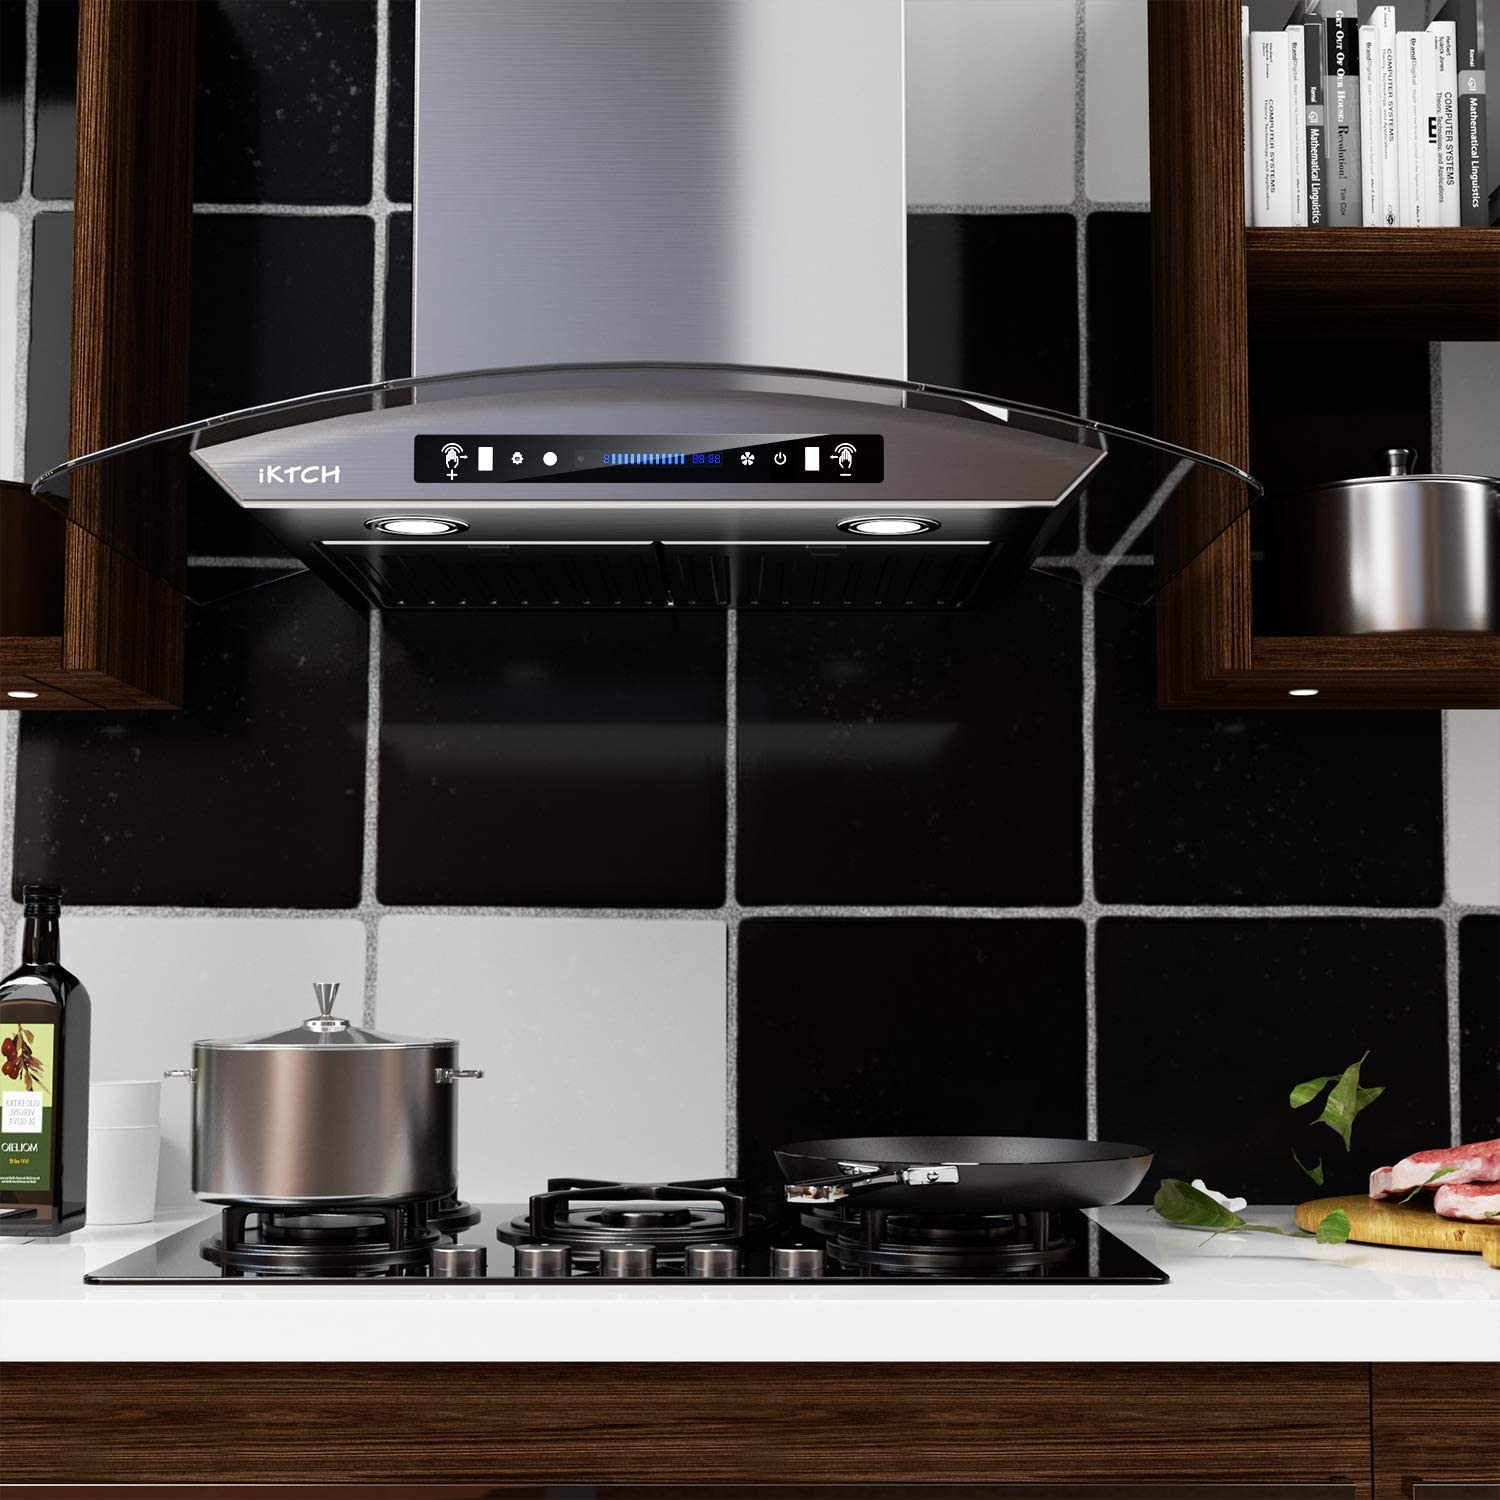 IKTCH 30 inch Bullet-in//Insert Range Hood 900 CFM with 2 Pcs Adjustable Lights and 2 Pcs Baffle Filters with Handlebar Stainless Steel Kitchen Vent Hood